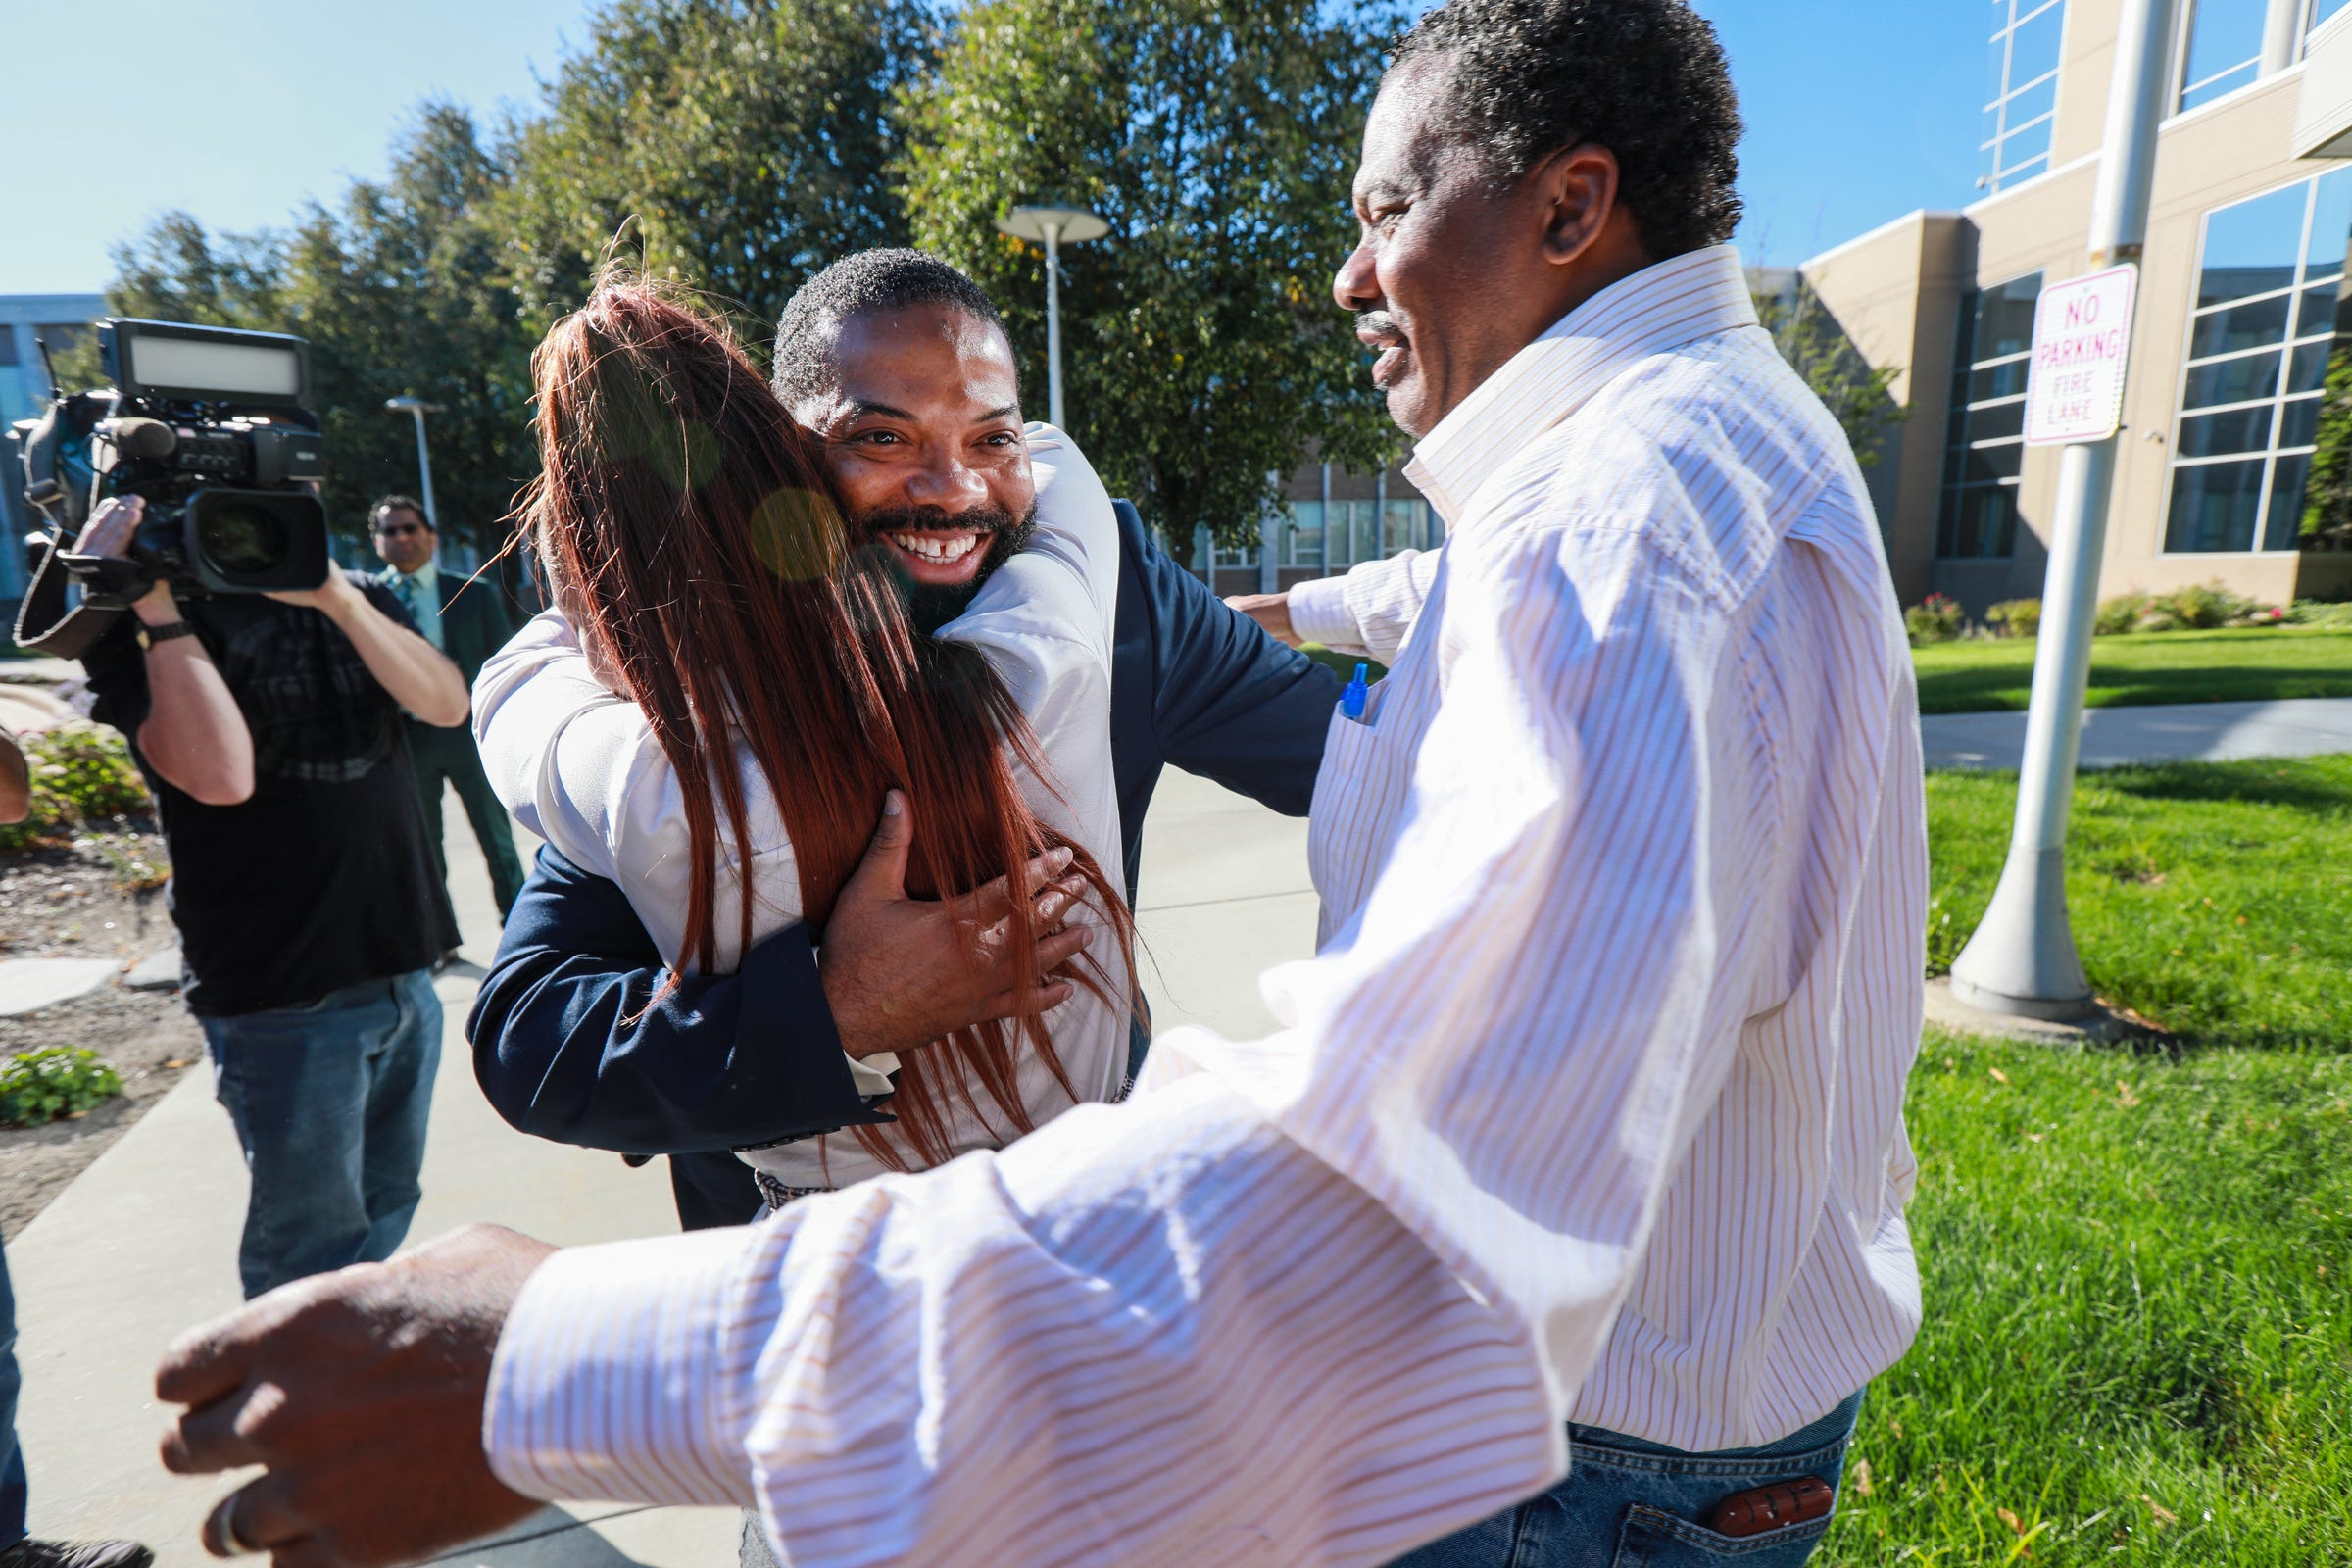 Juwan Deering's life after prison release: What he did in first hours of freedom